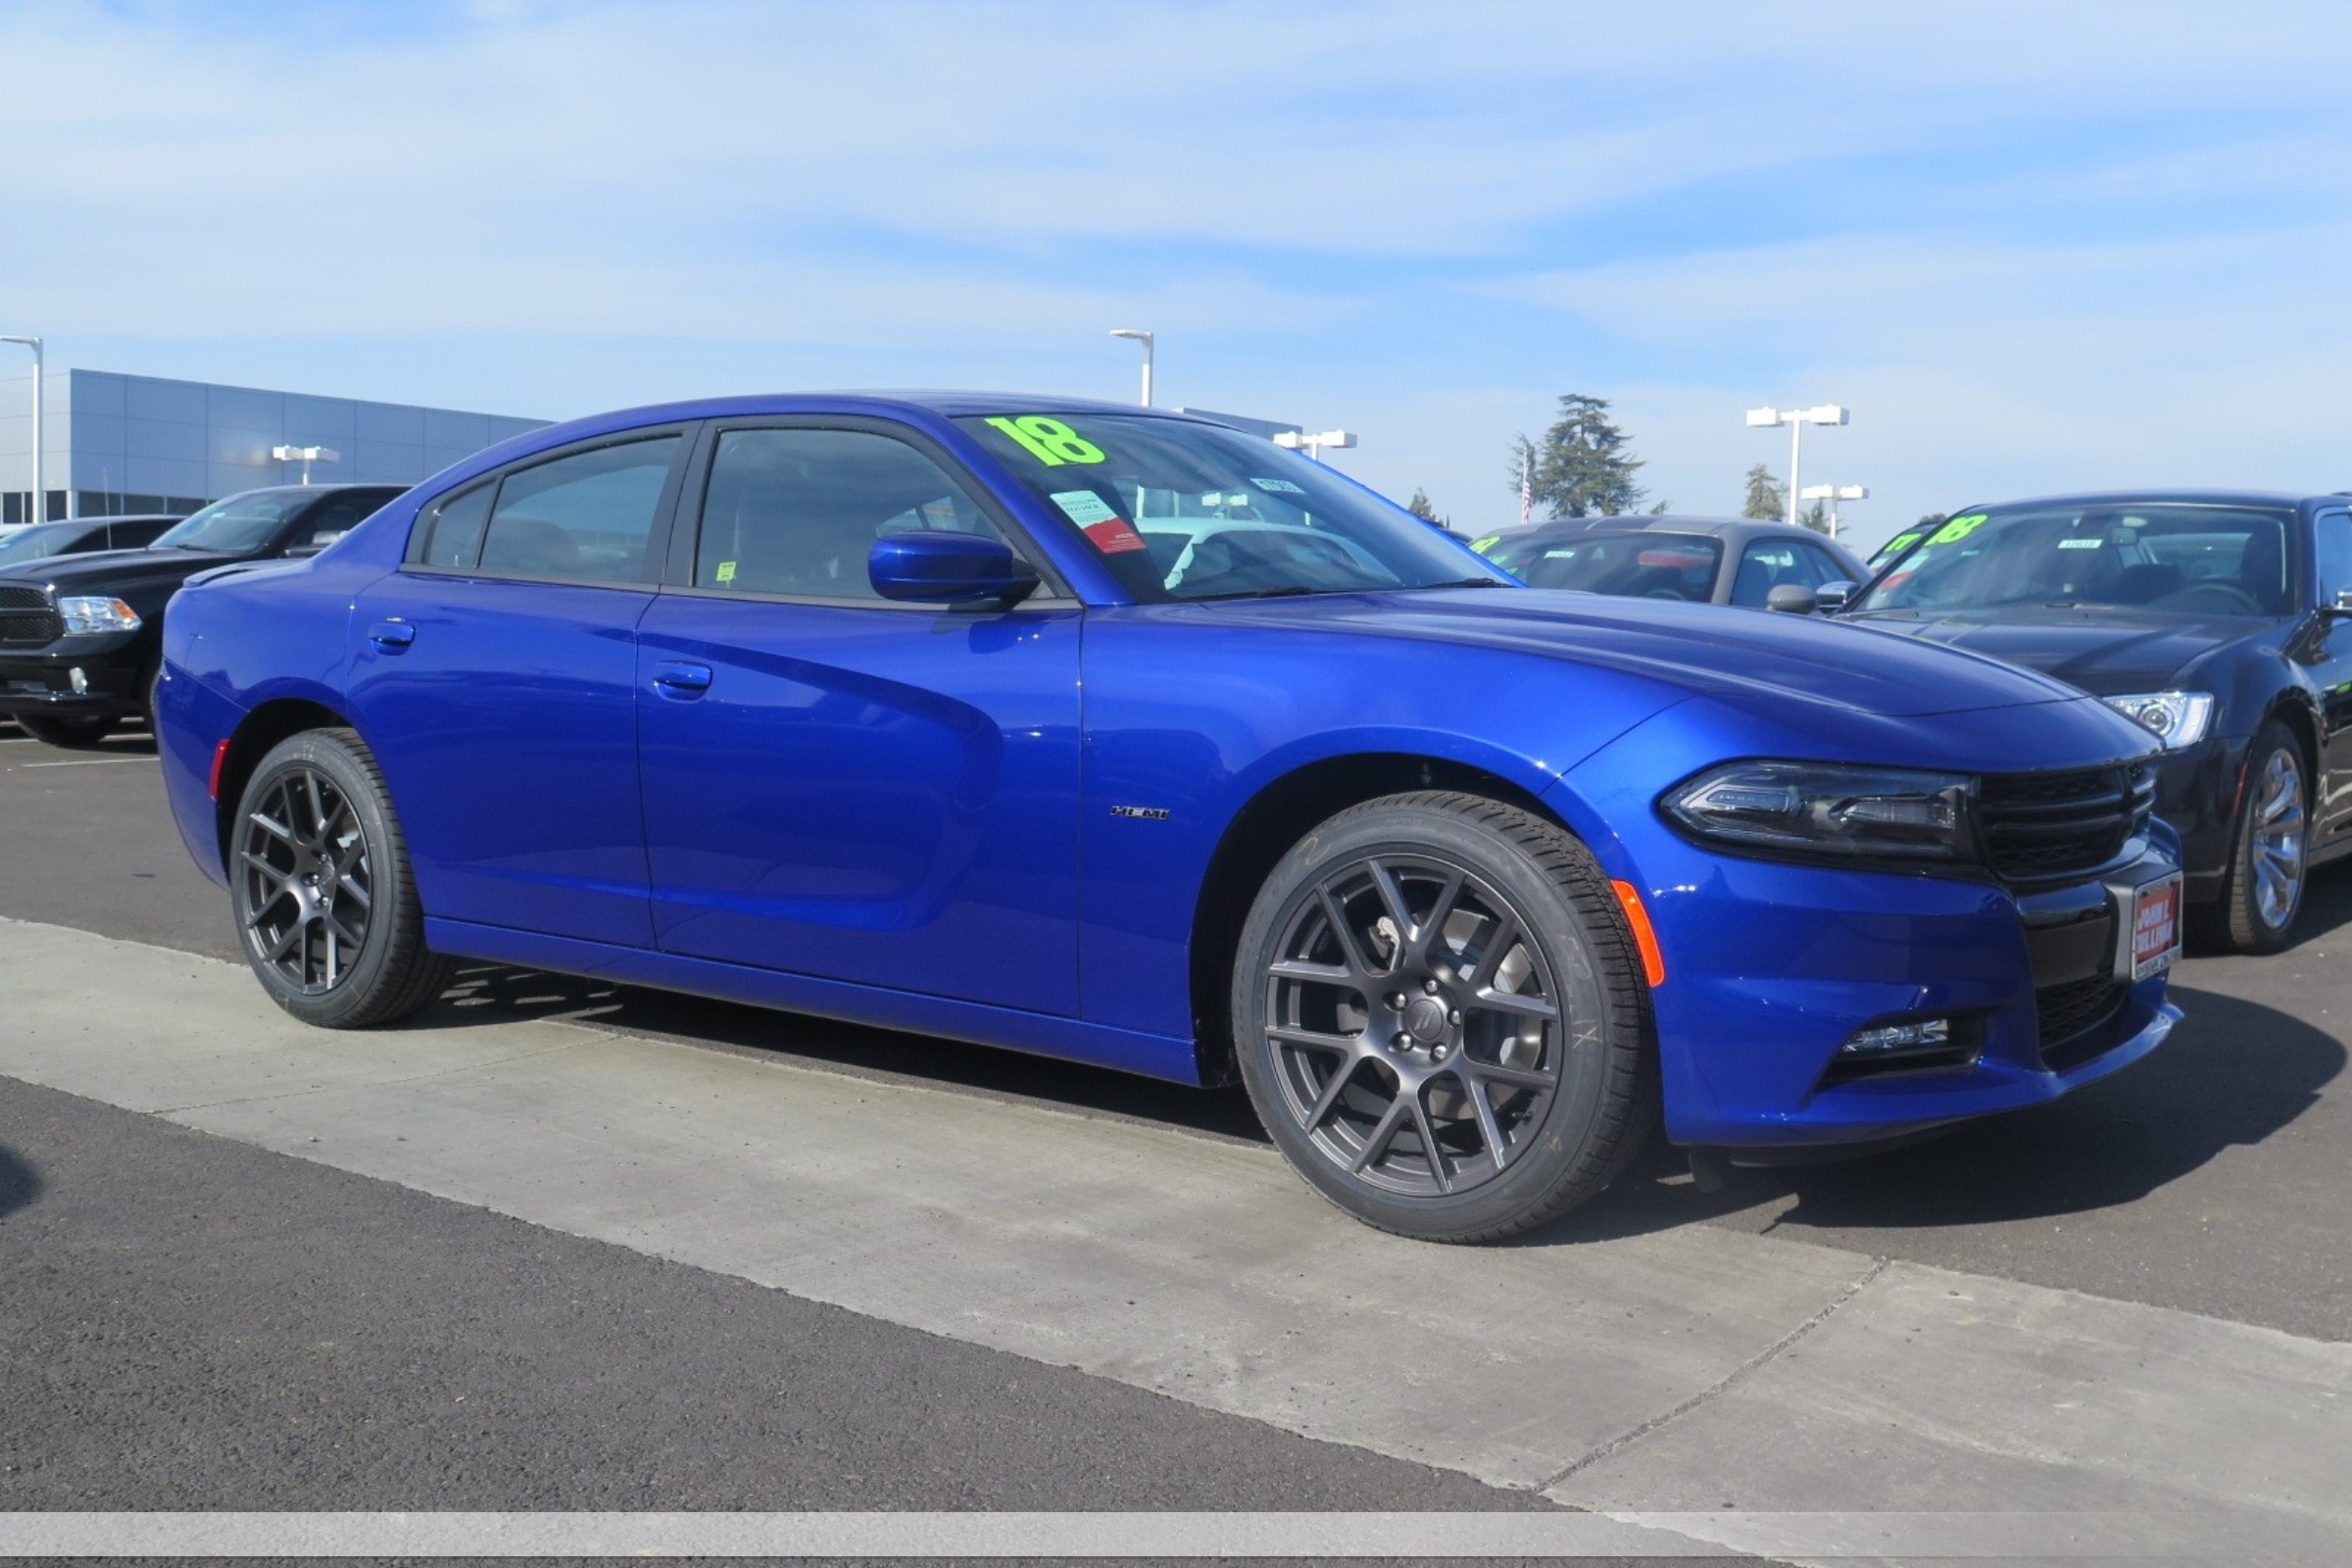 New 2018 DODGE Charger R/T 4D Sedan in Yuba City #00017503 | John L Sullivan Dodge Chrysler Jeep Ram